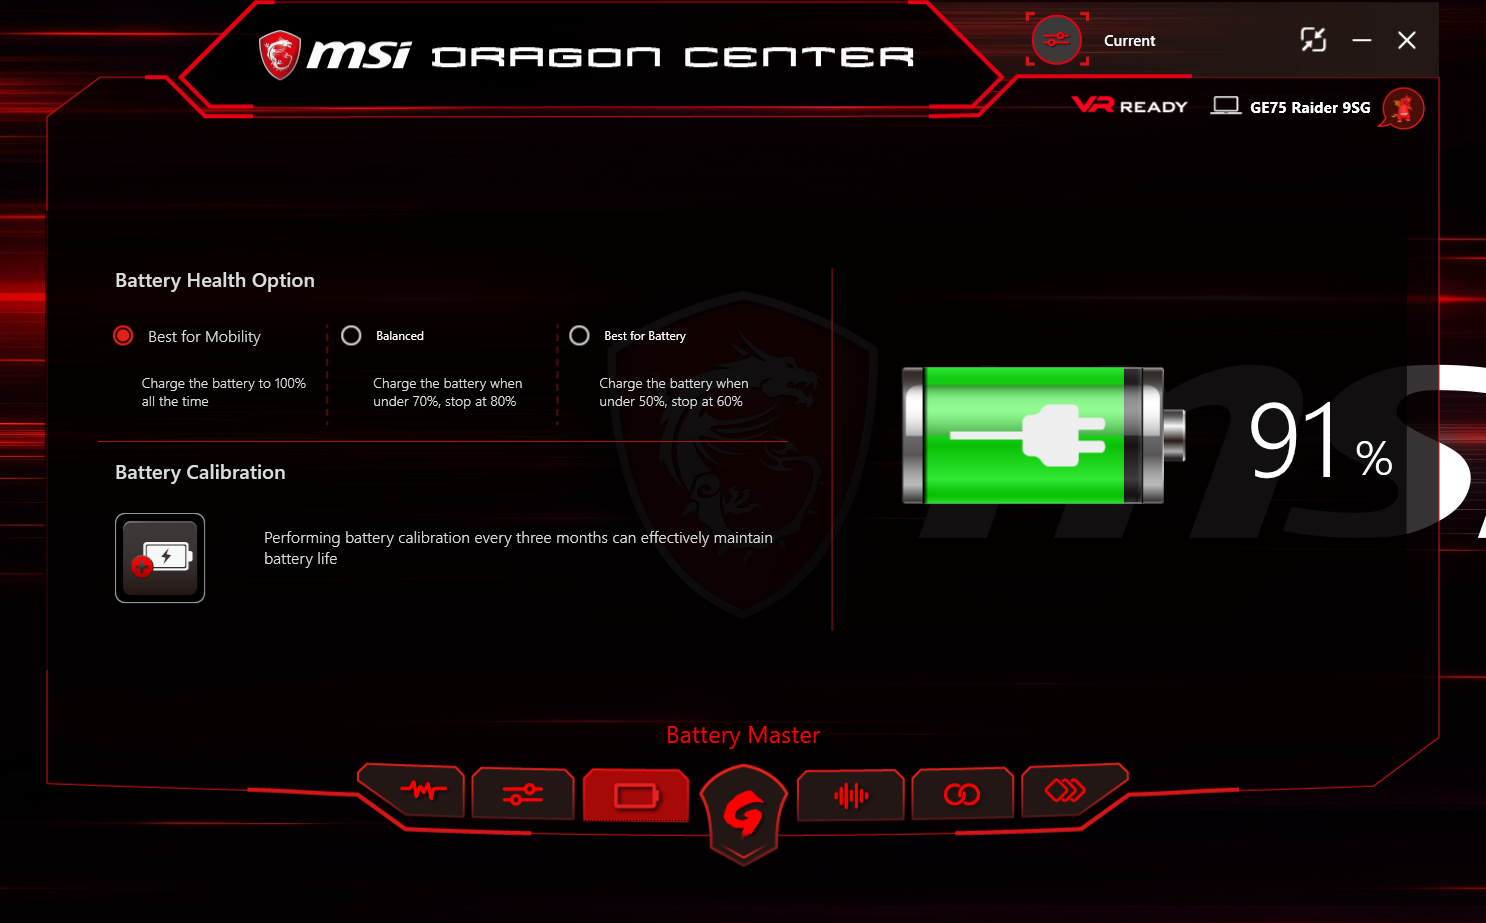 Battery Life and Charge Time - The MSI GE75 Raider Laptop